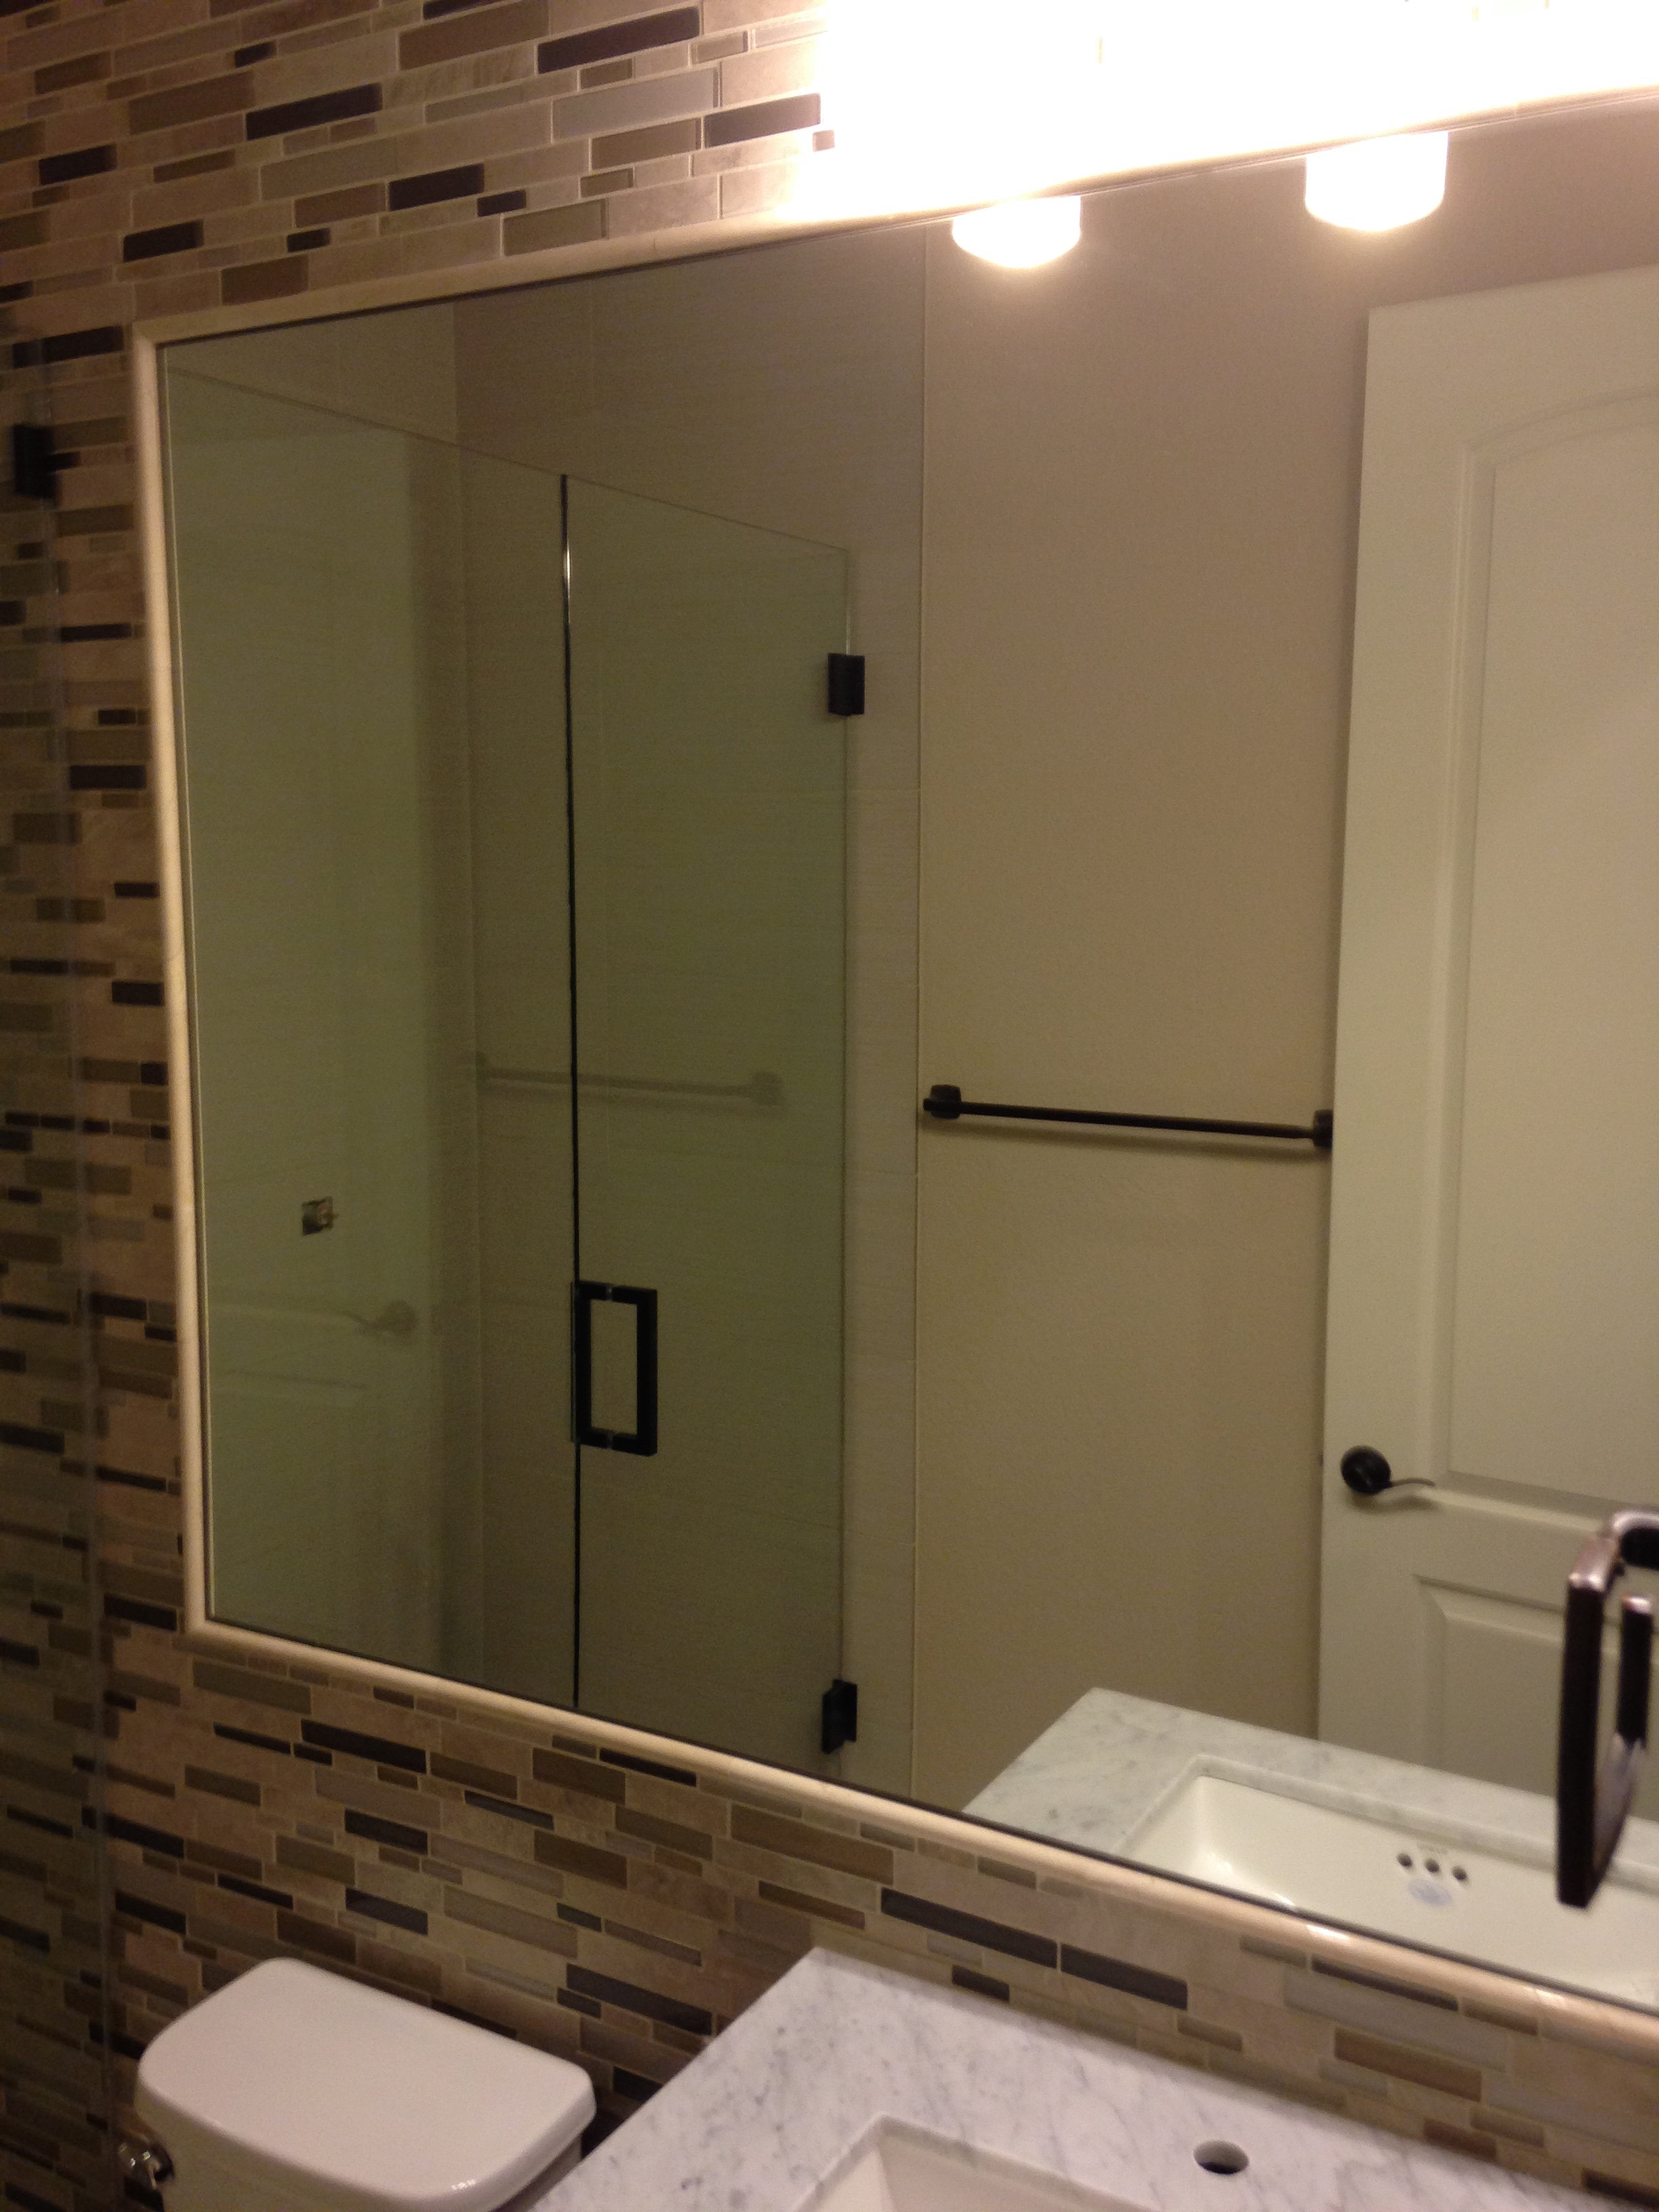 Custom Mirror Installed, Bathroom Mirror Repair, Bathroom Mirror Replaced, Mirror  Replacement, Mirror.